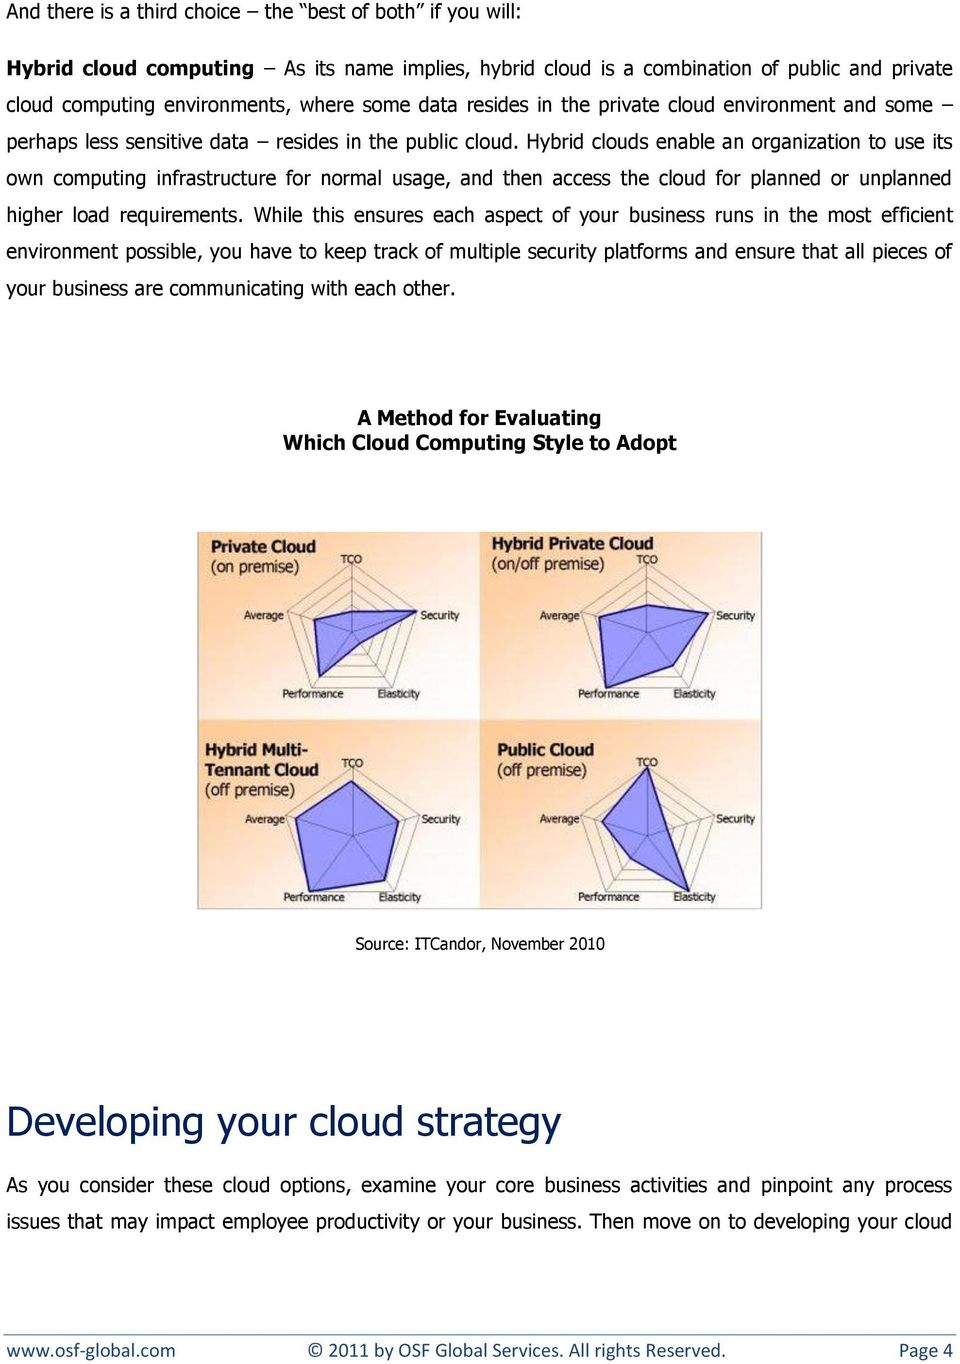 Hybrid clouds enable an organization to use its own computing infrastructure for normal usage, and then access the cloud for planned or unplanned higher load requirements.